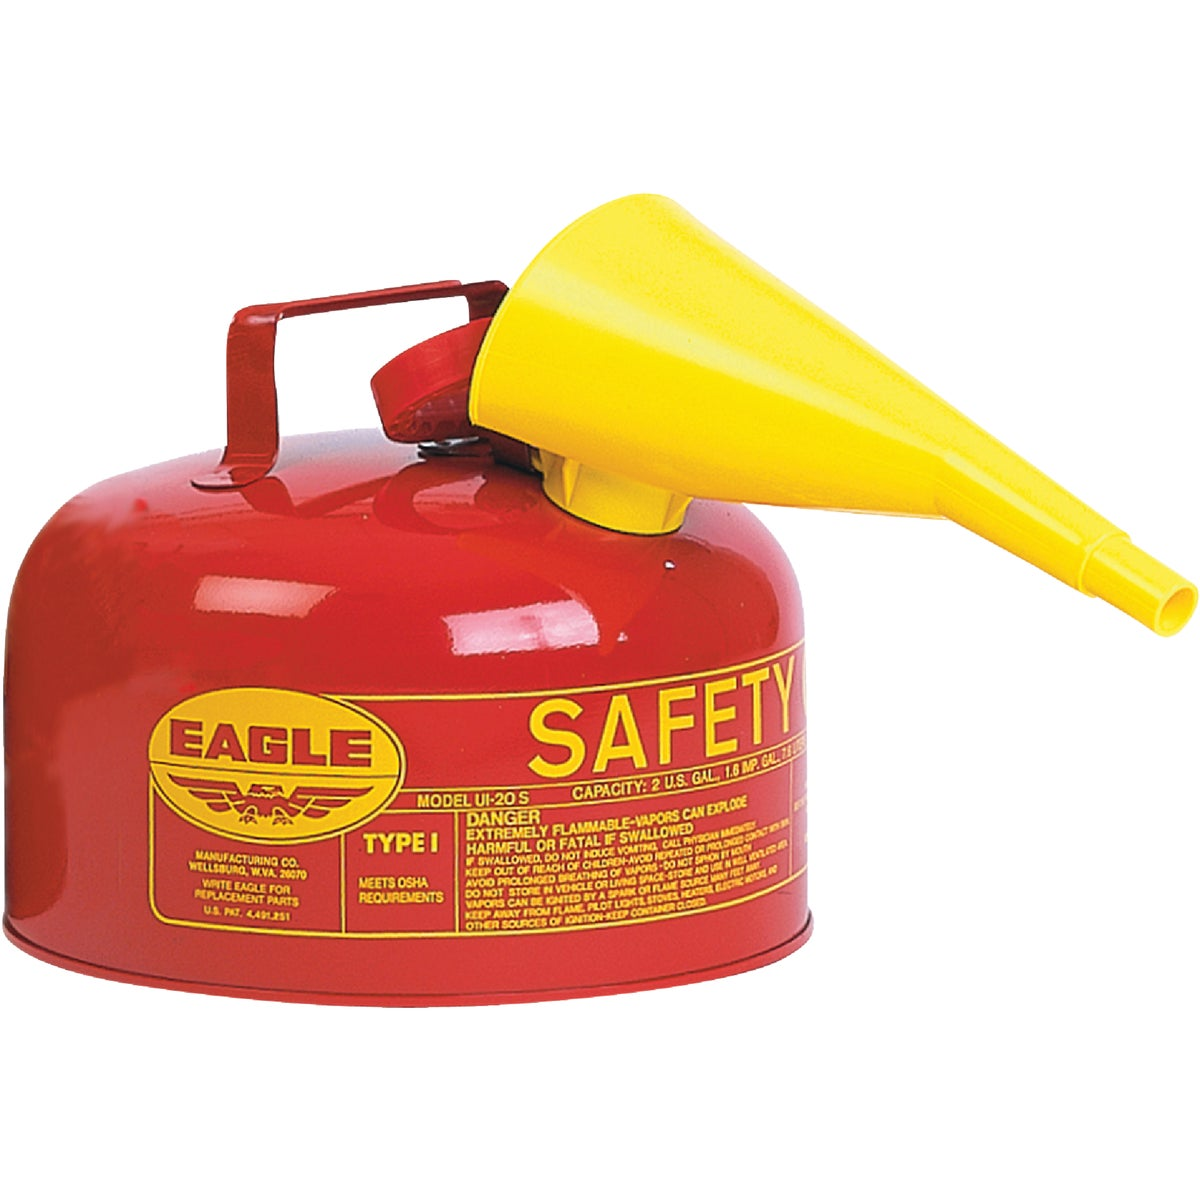 RED 2GAL GAS SAFETY CAN